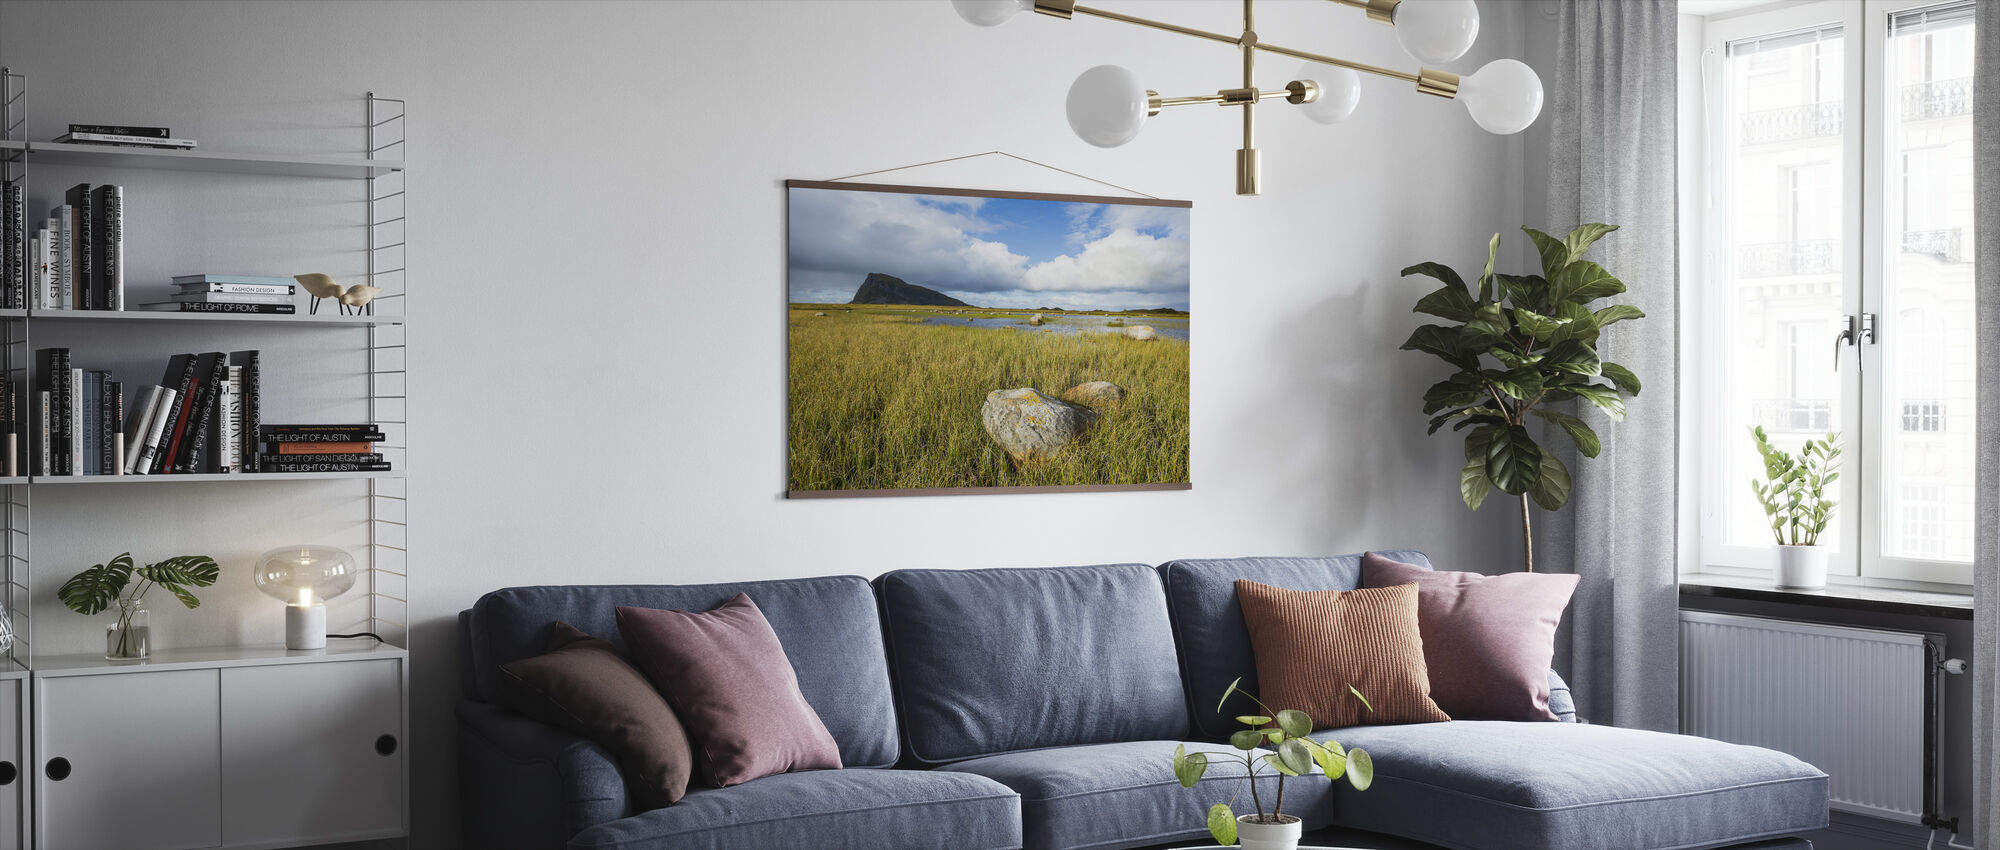 Rock formations in Grassy Coastline, Norway - Poster - Living Room